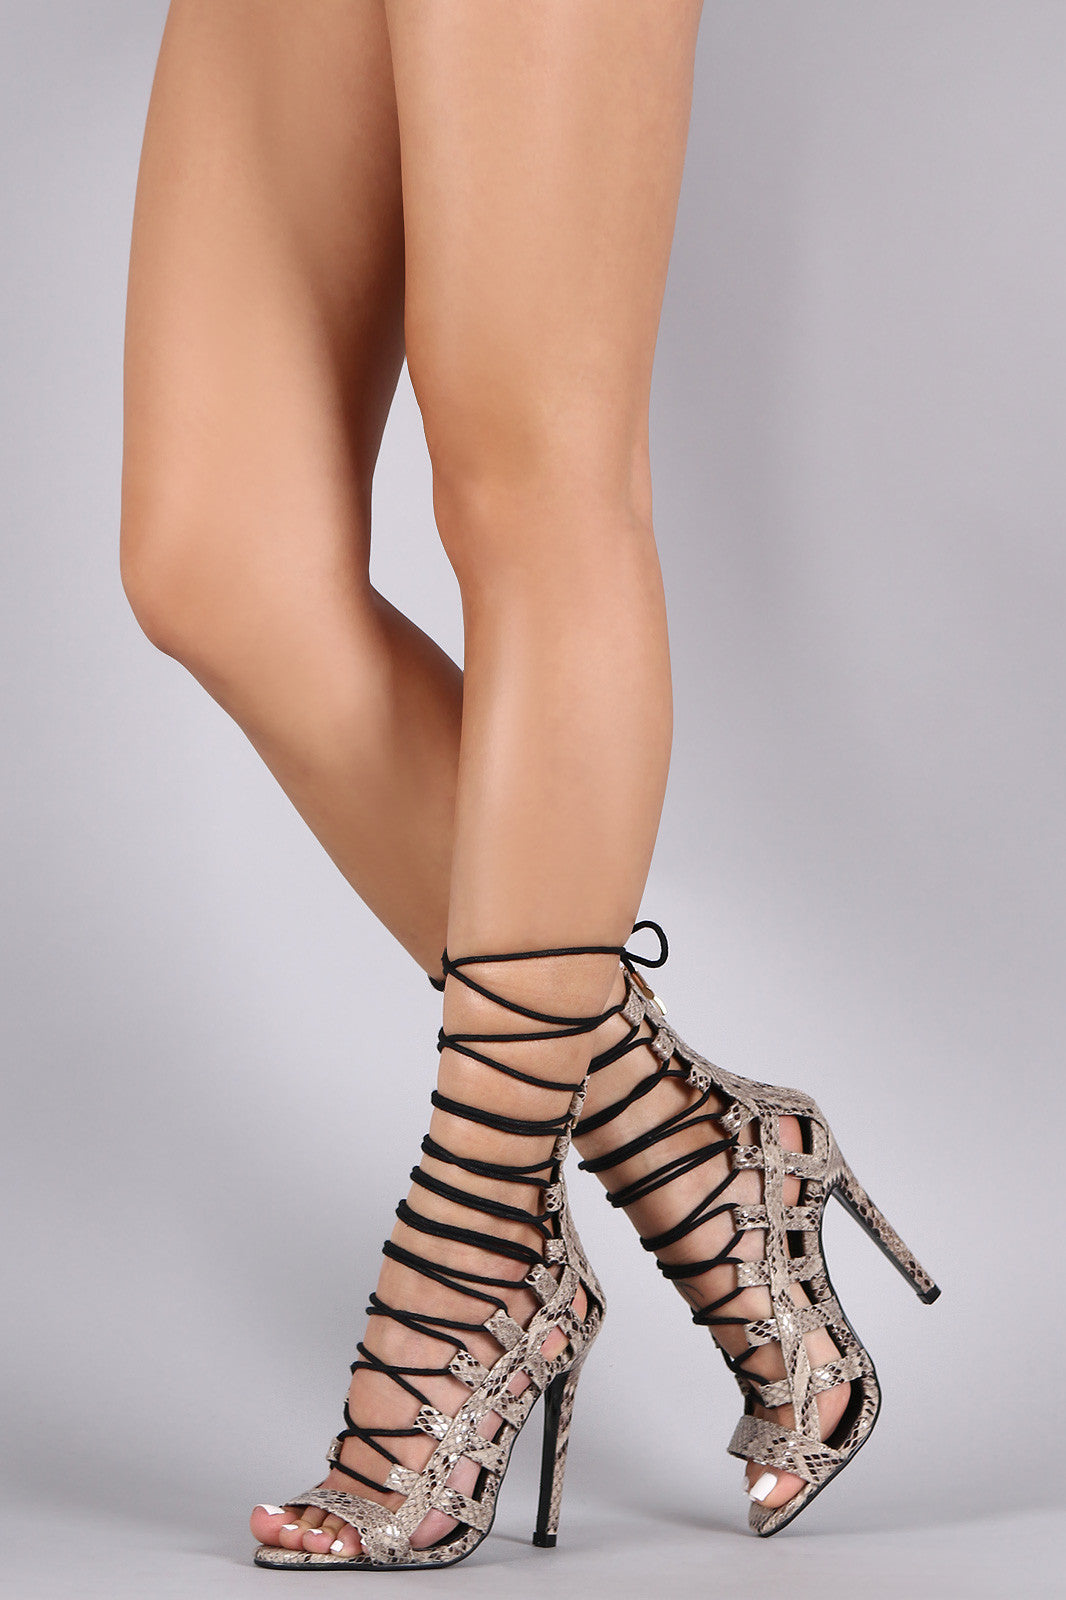 Python Strappy Caged Lace Up Stiletto Heel - Thick 'N' Curvy Shop - 2